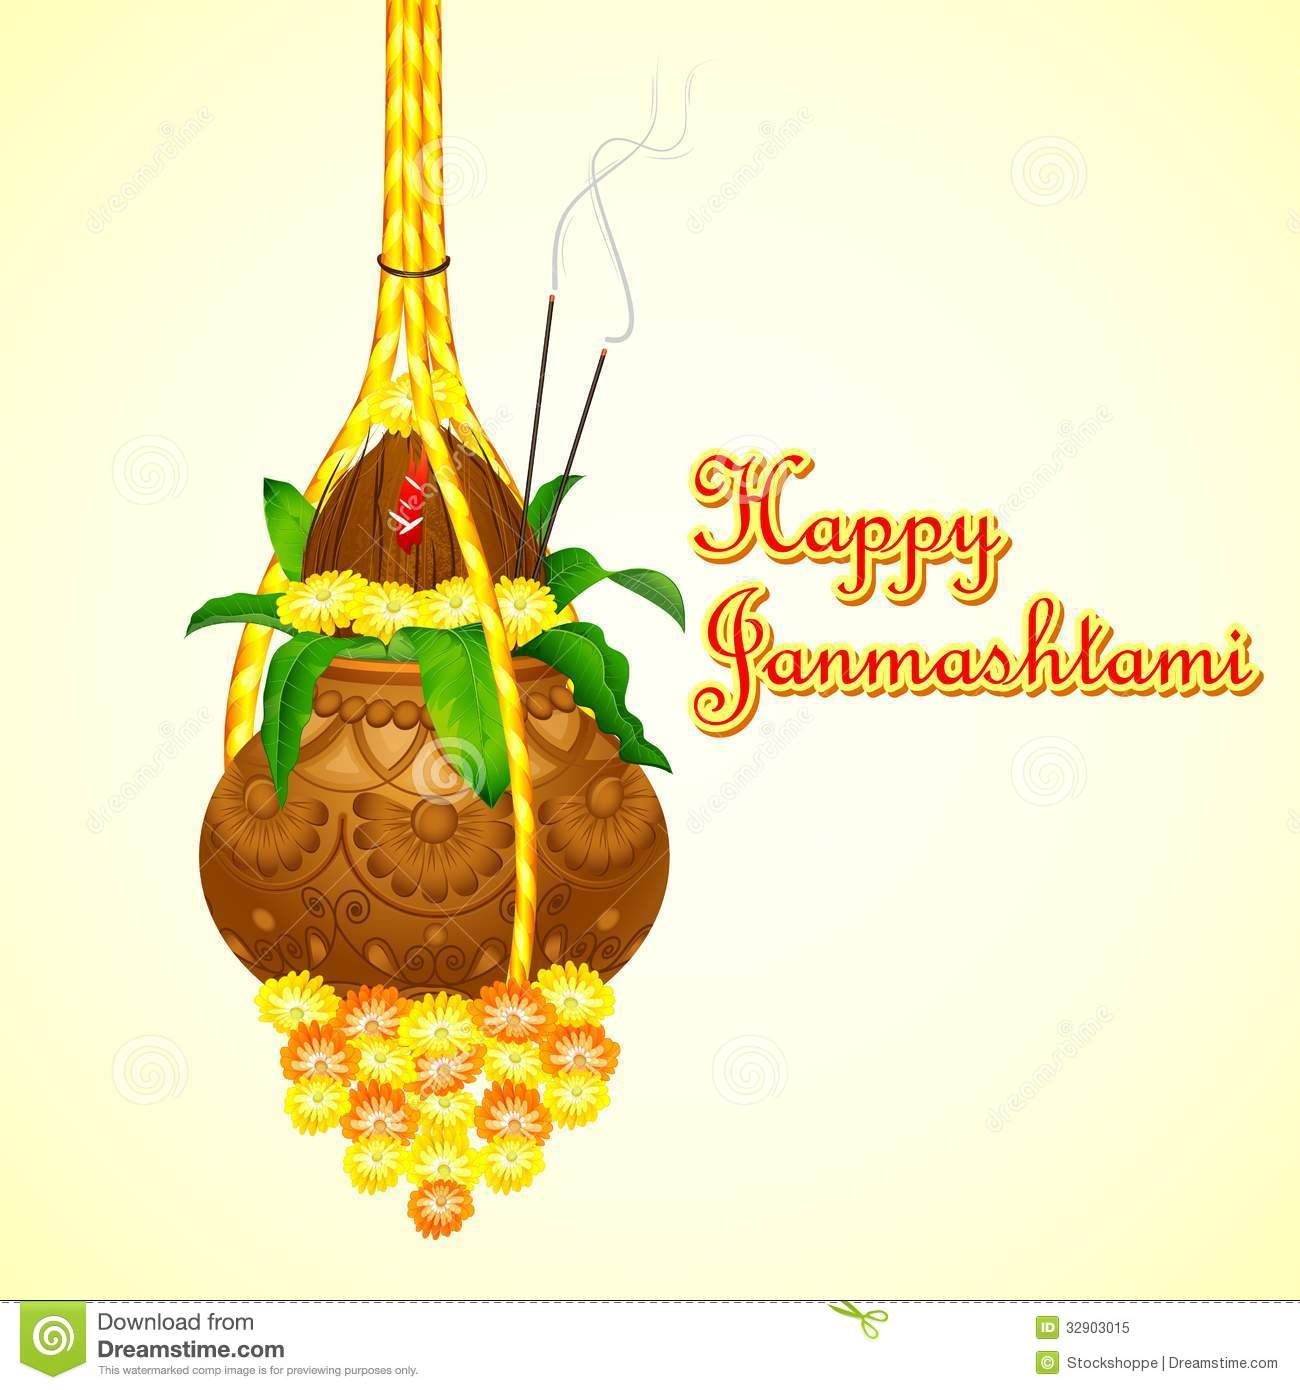 Krishna Hd Wallpaper Free Download Happy Janmashtami Royalty Free Stock Photo Image 32903015